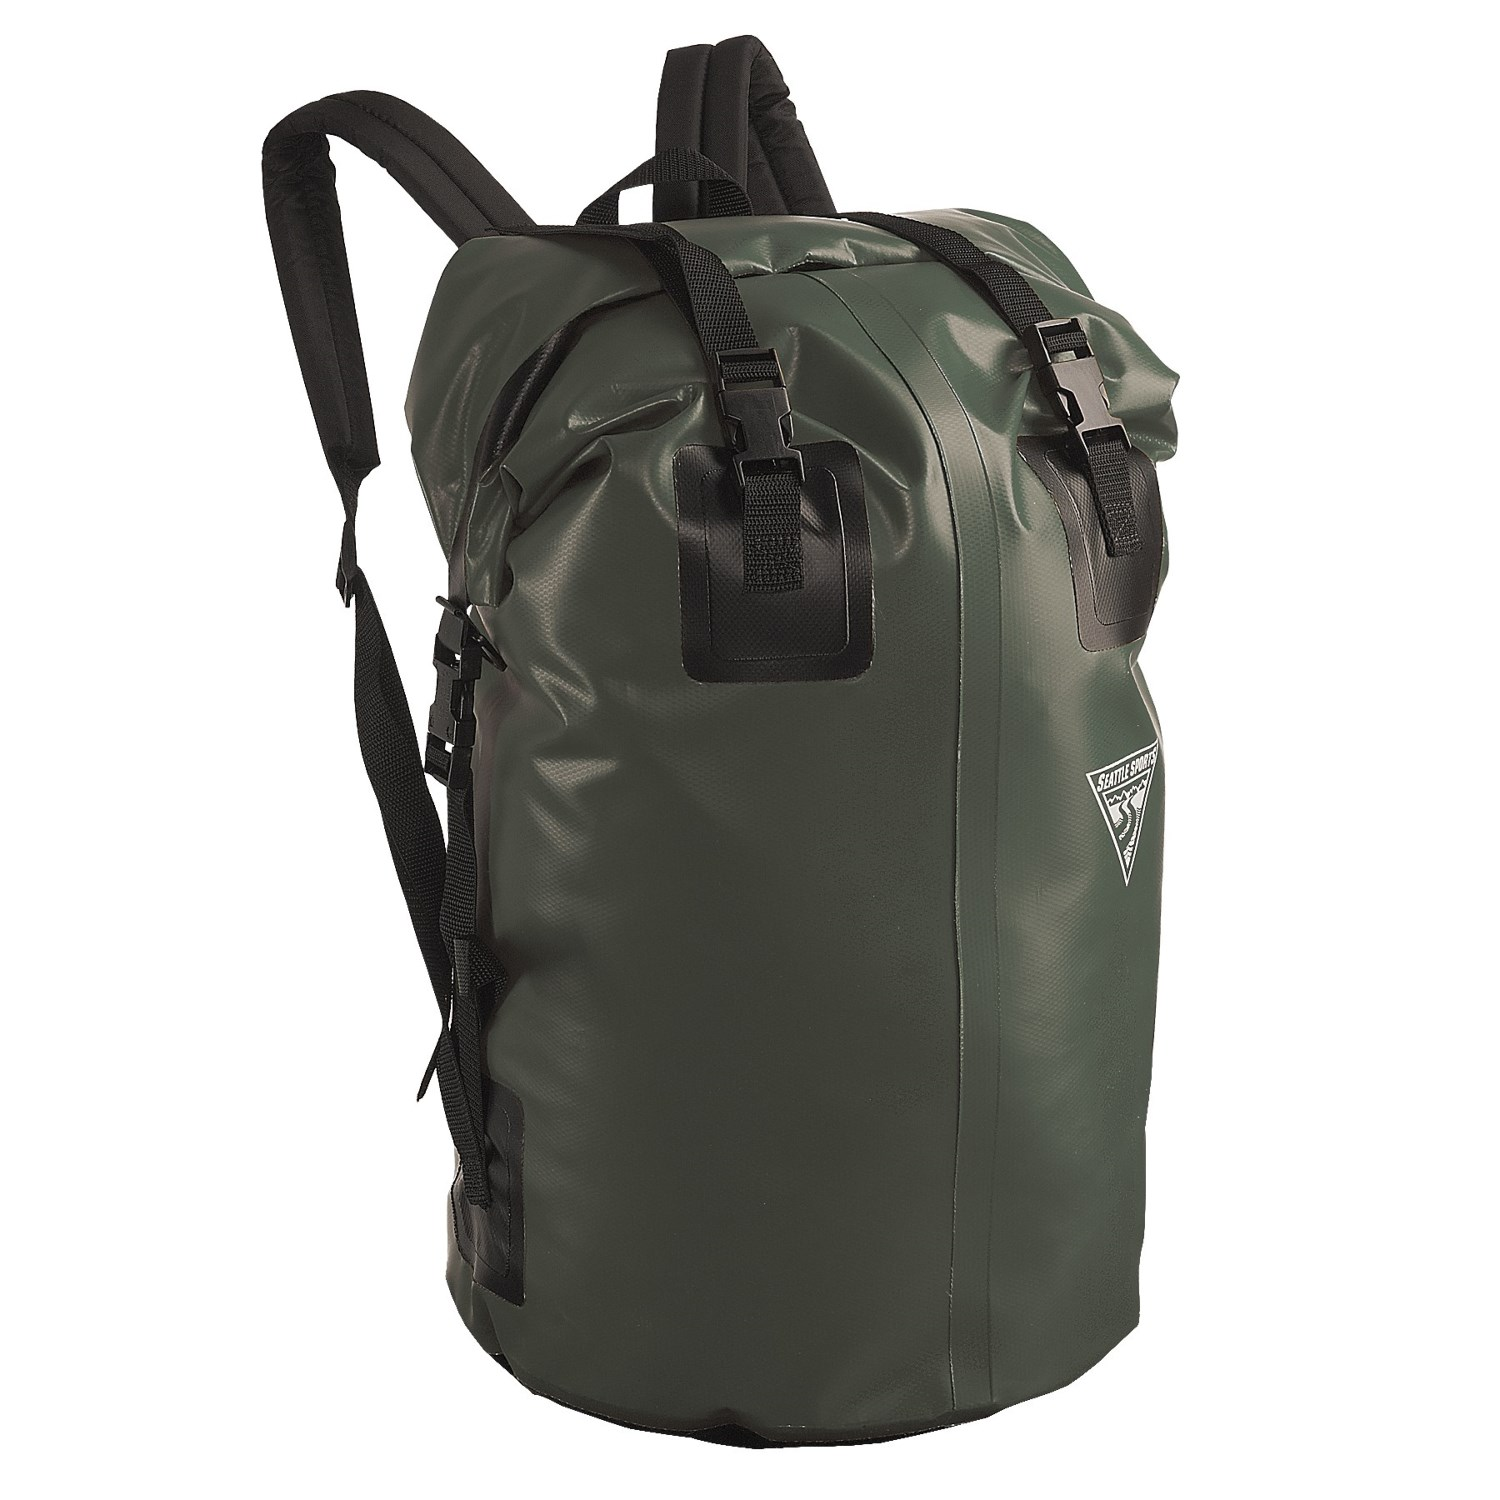 Seattle Sports H2o Gear Waterproof Backpack Medium